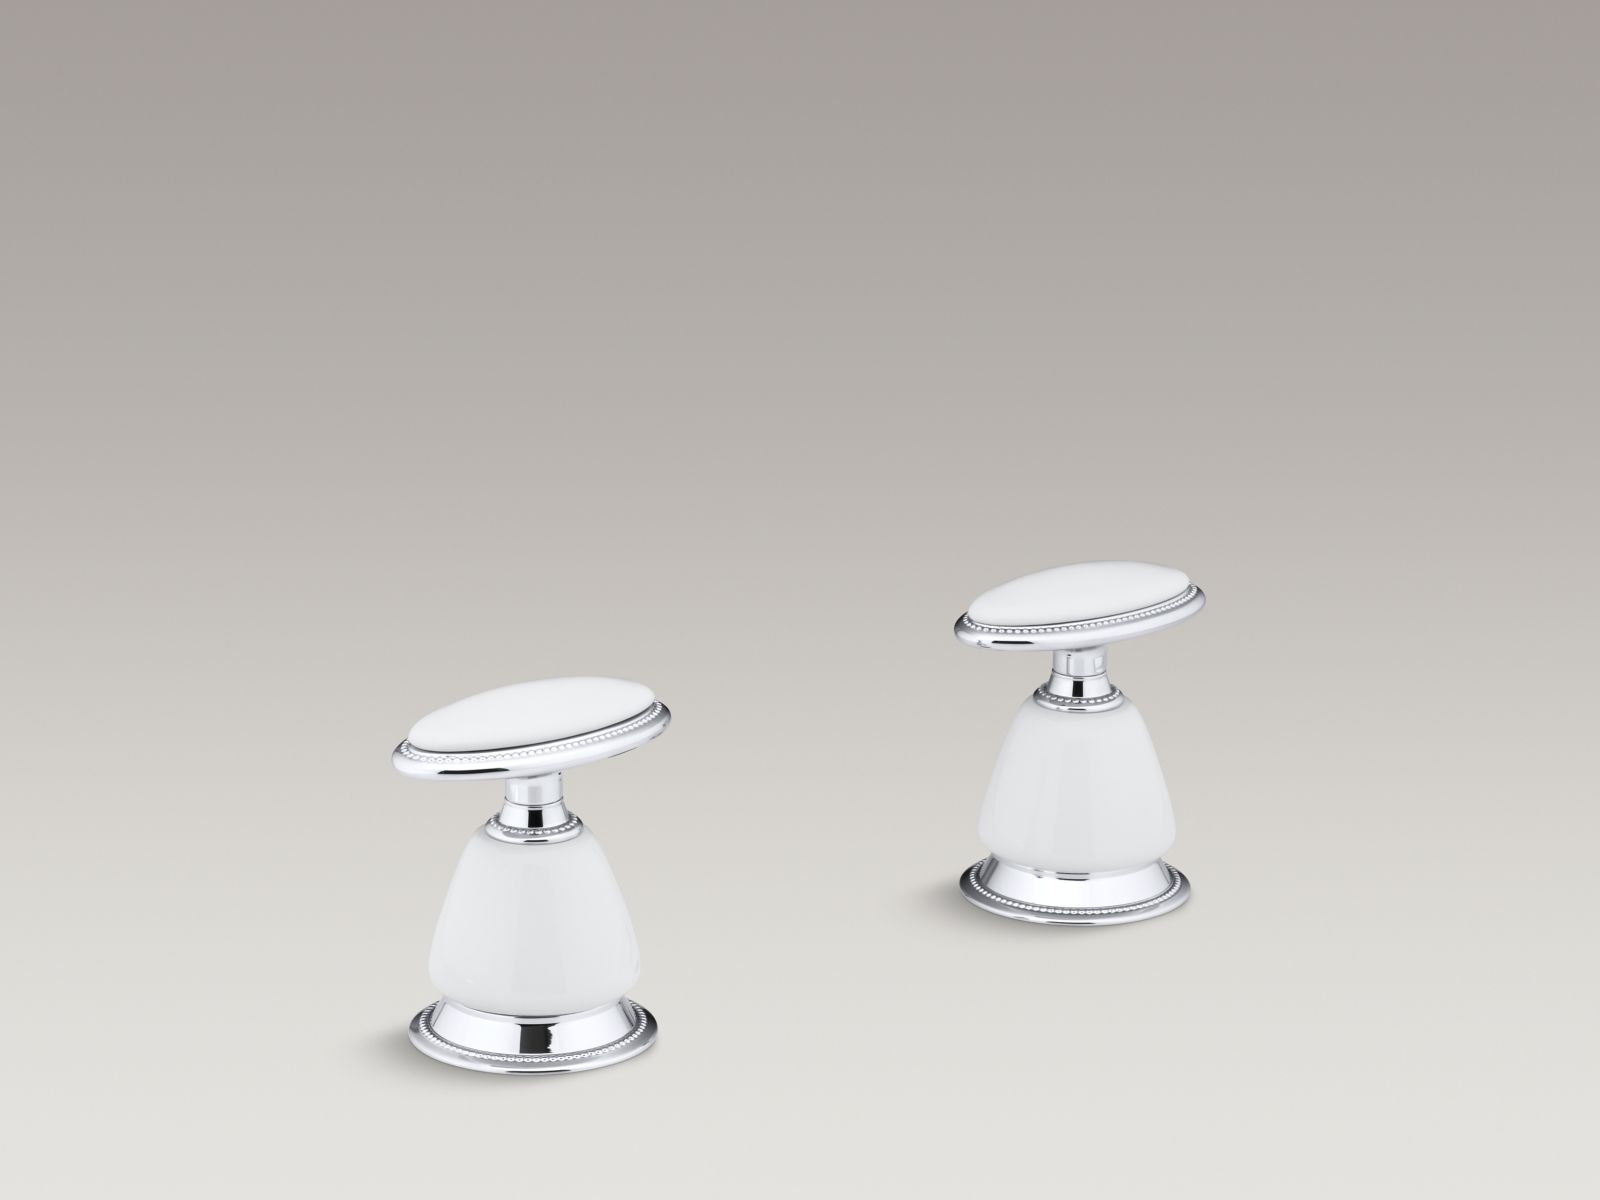 Child Proof Faucet Knob Covers